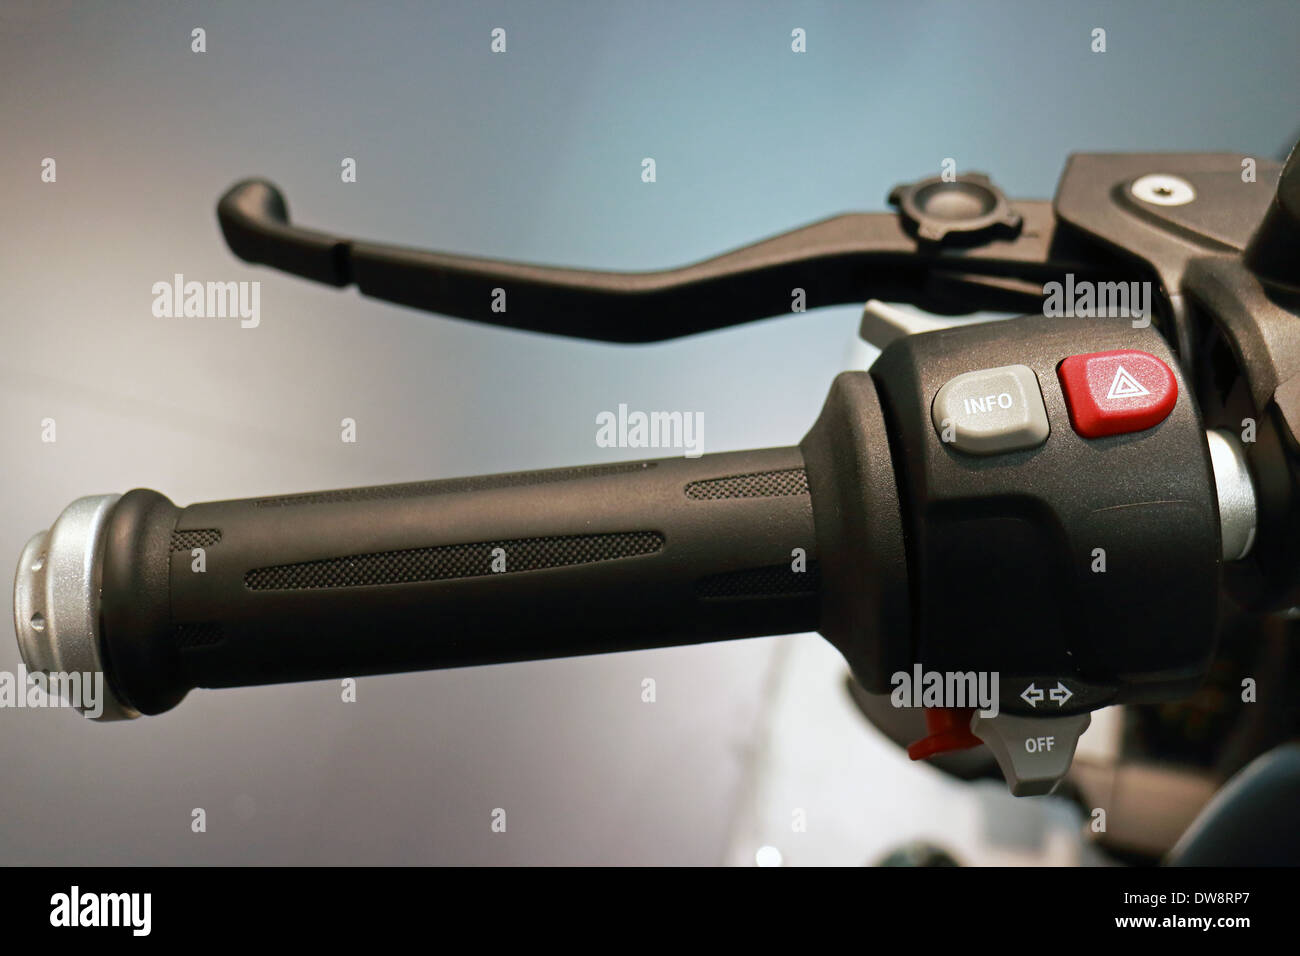 Motorcycle Steering Wheel Closeup View and Control Buttons - Stock Image